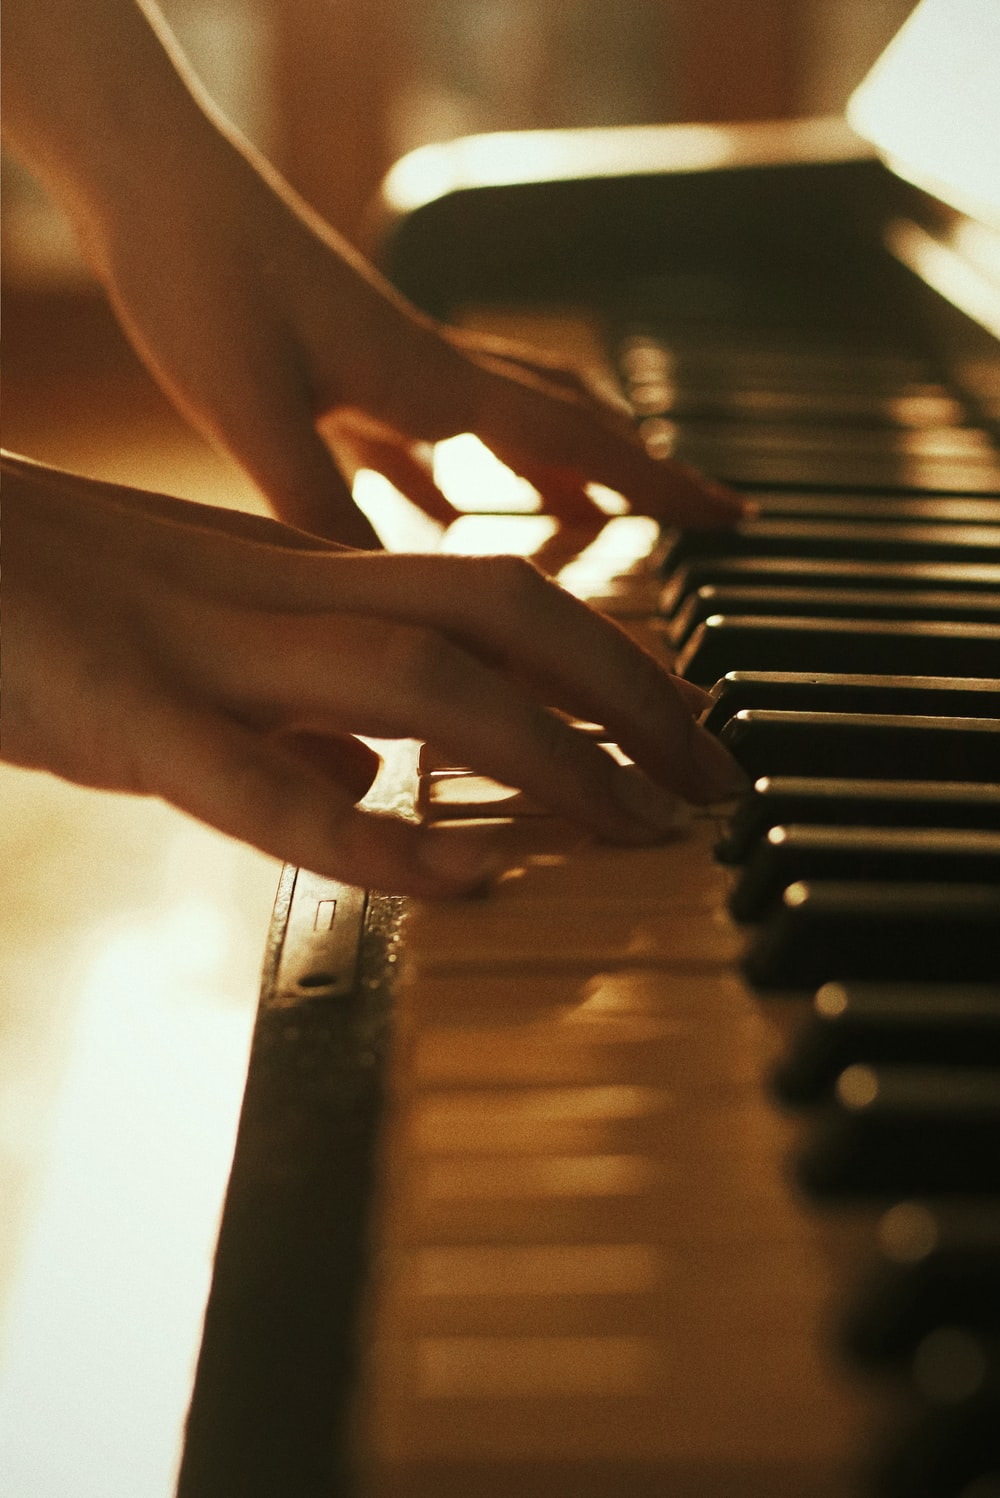 person playing piano during daytime